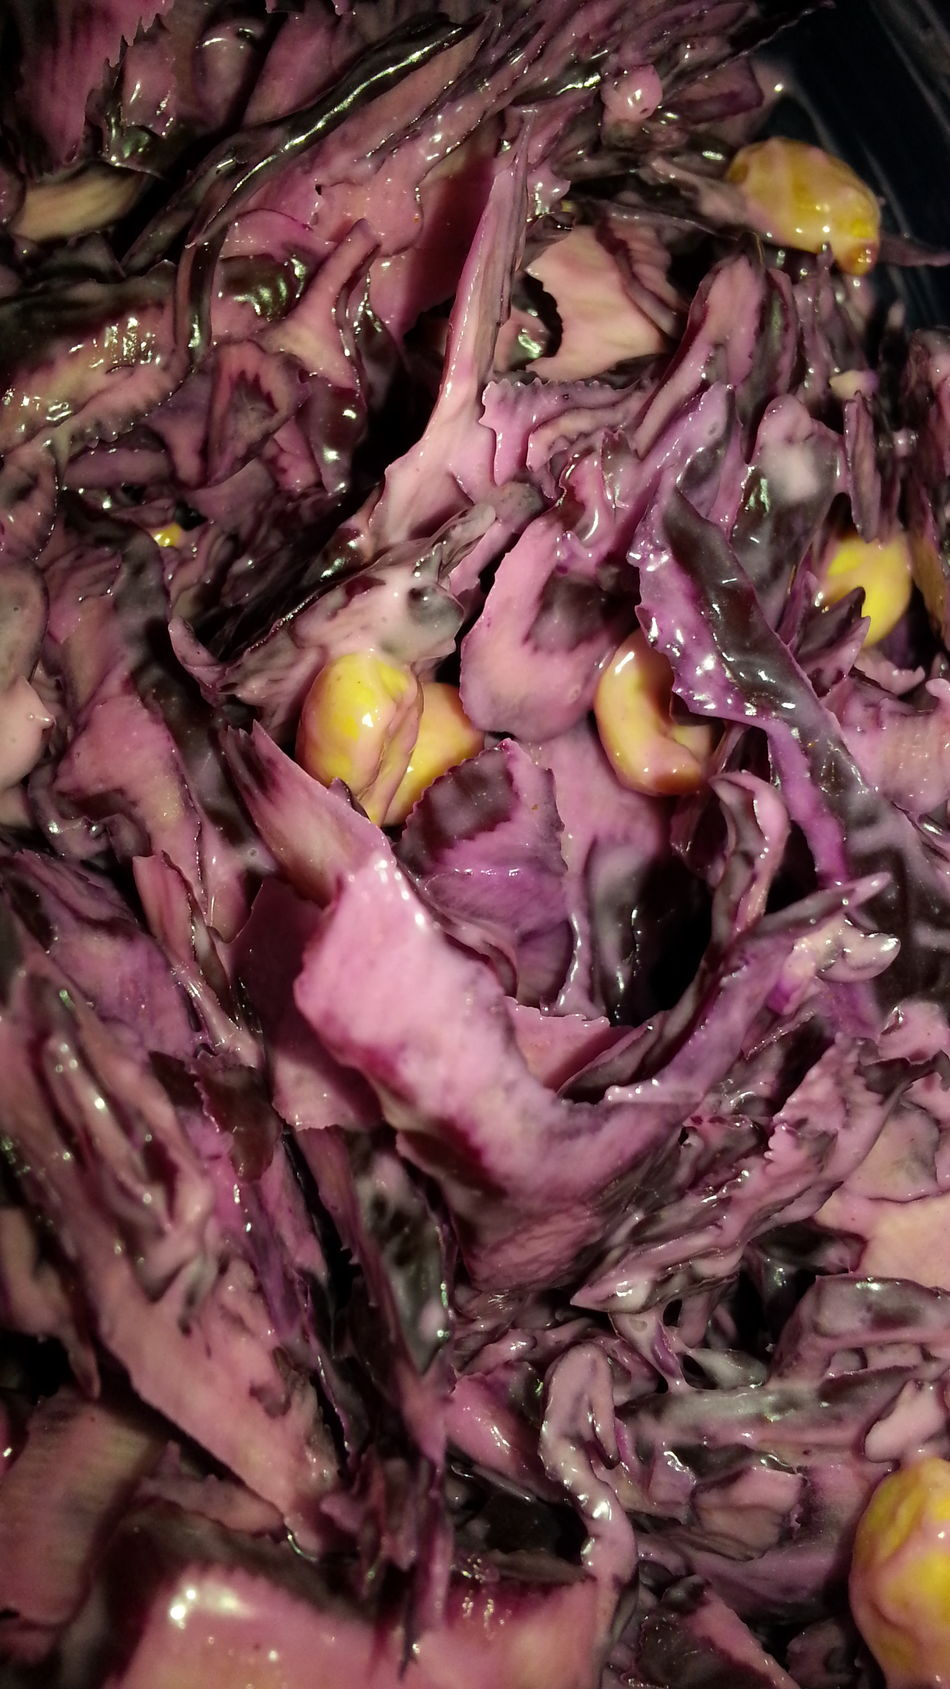 PLEASE check my other uploads. You might also like them. THANKS 4 passing by! No Edit/no Filter Ohne Bearbeitung No People Menschenleer Food Essen Close-up Nahaufnahme Mag Ich Lecker Delicious Rotkohl Rotkraut Kraut Kohl Salad Salat Bowl Schussel Corn Mais Freshness Food And Drink